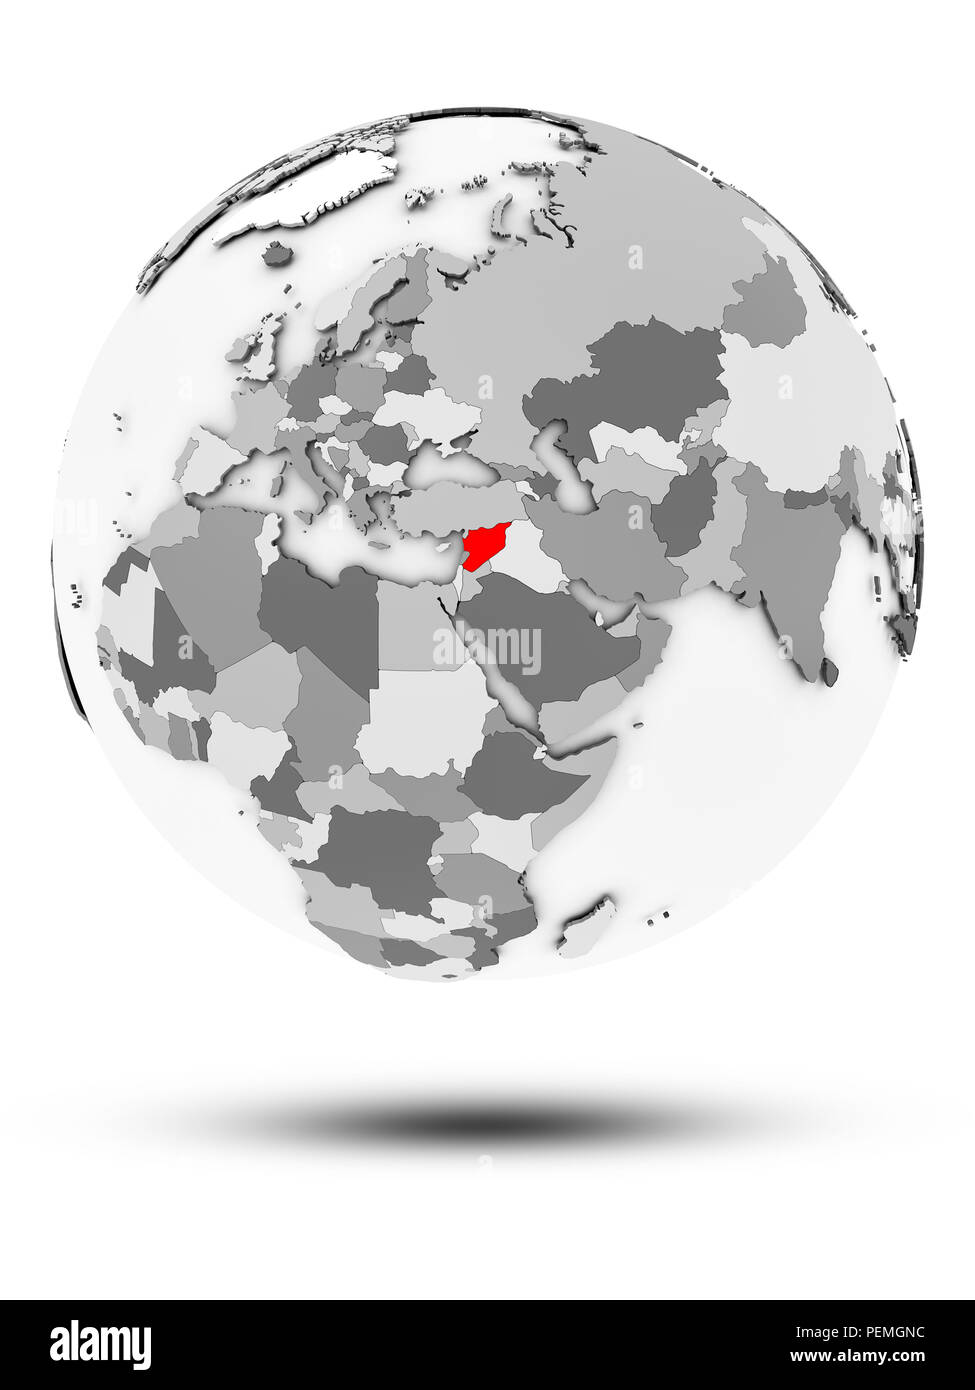 Syria on simple gray globe with shadow isolated on white background. 3D illustration. - Stock Image